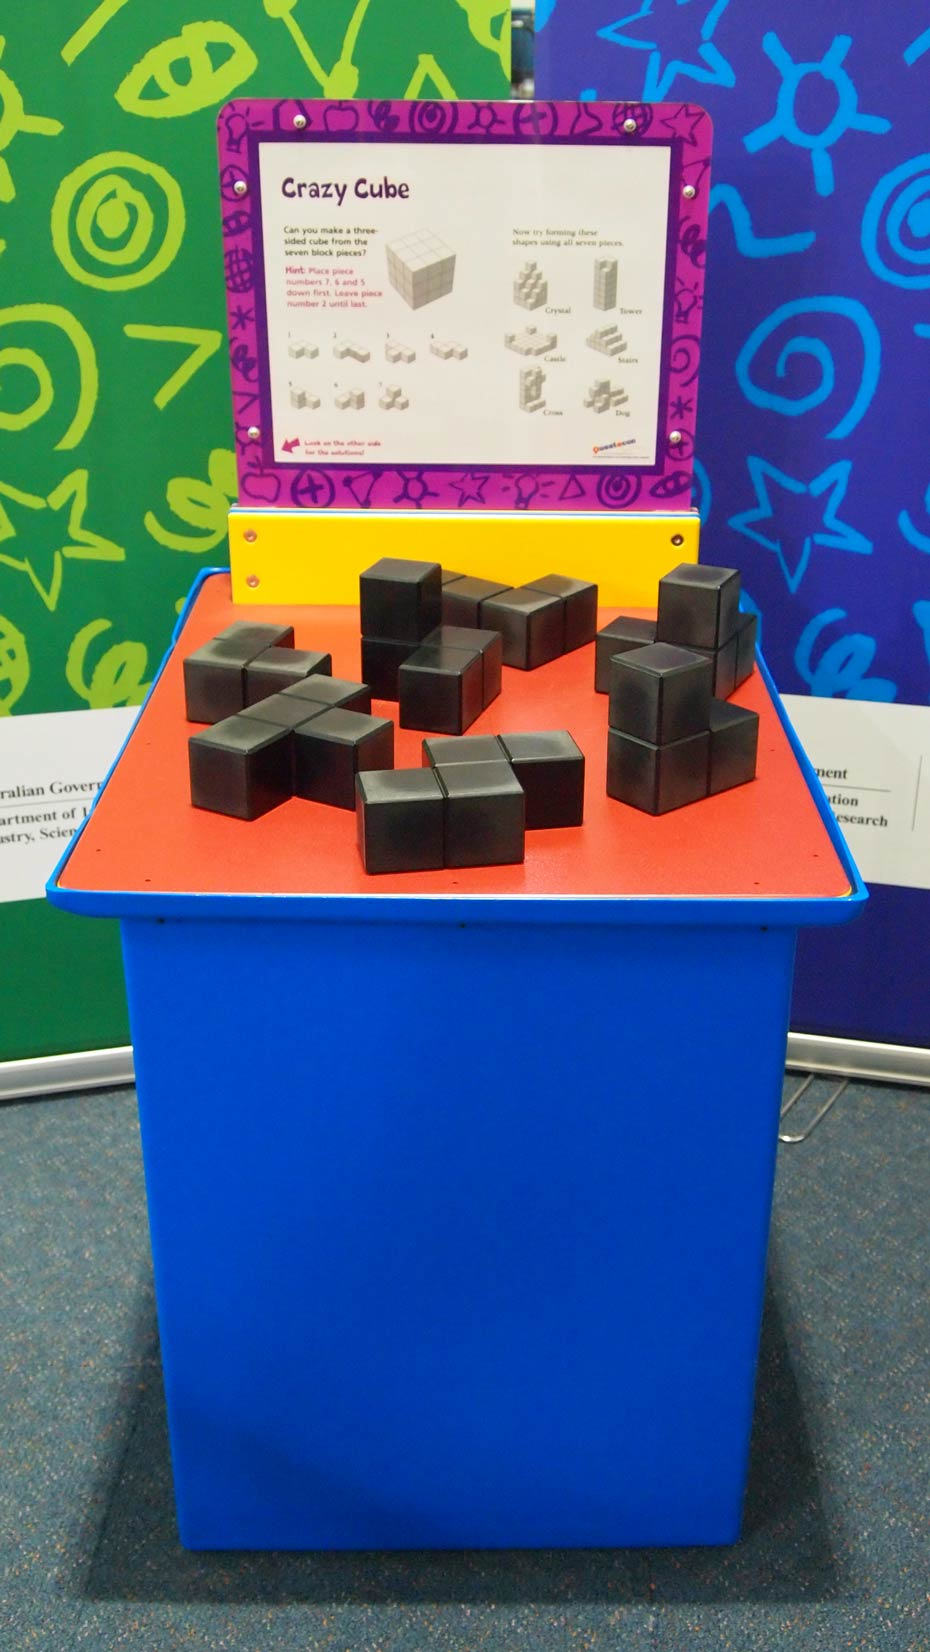 A blue and orange exhibit table with a yellow, white and purple information panel on top, sits in front of two green and blue walls. On top of the table are an array of small black cubes joined together in different shapes.